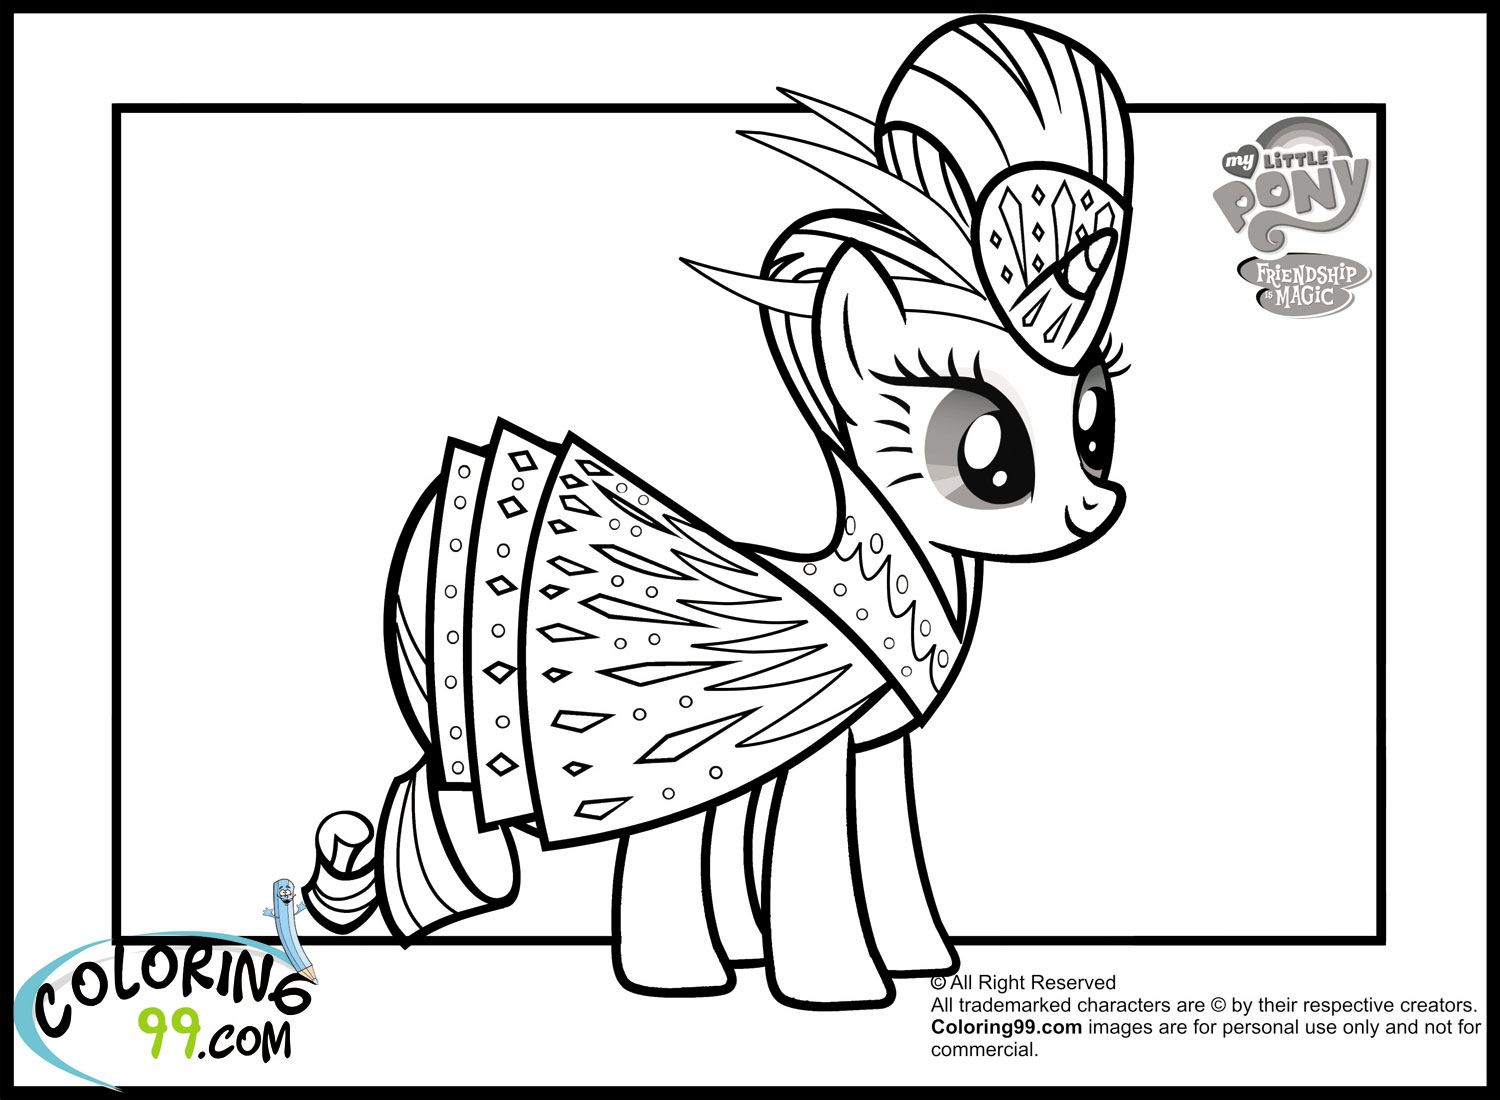 Old Fashioned My Little Pony Coloring Pages Fluttershy Dress Image ...